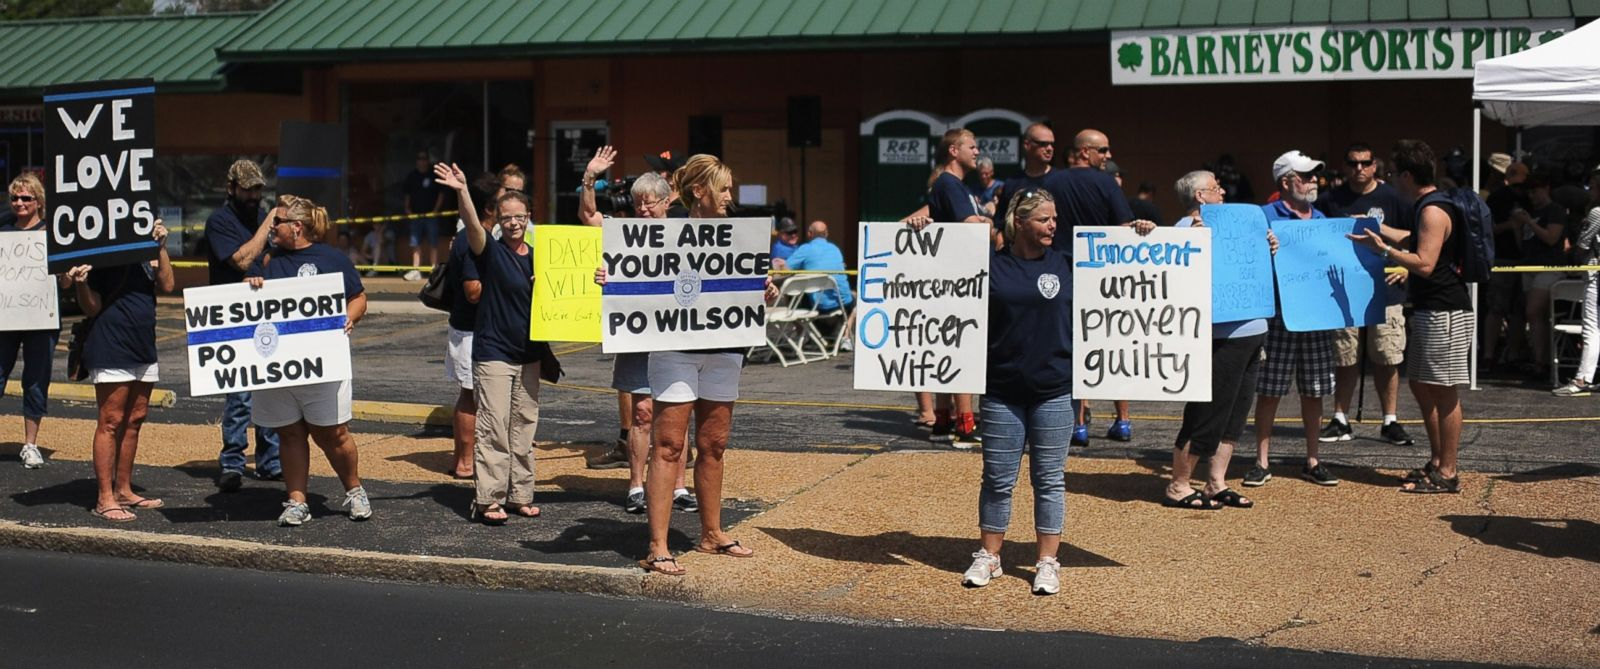 PHOTO: Protesters display signs during a rally in support of Officer Darren Wilson on Aug. 23, 2014, in St. Louis, Mo.